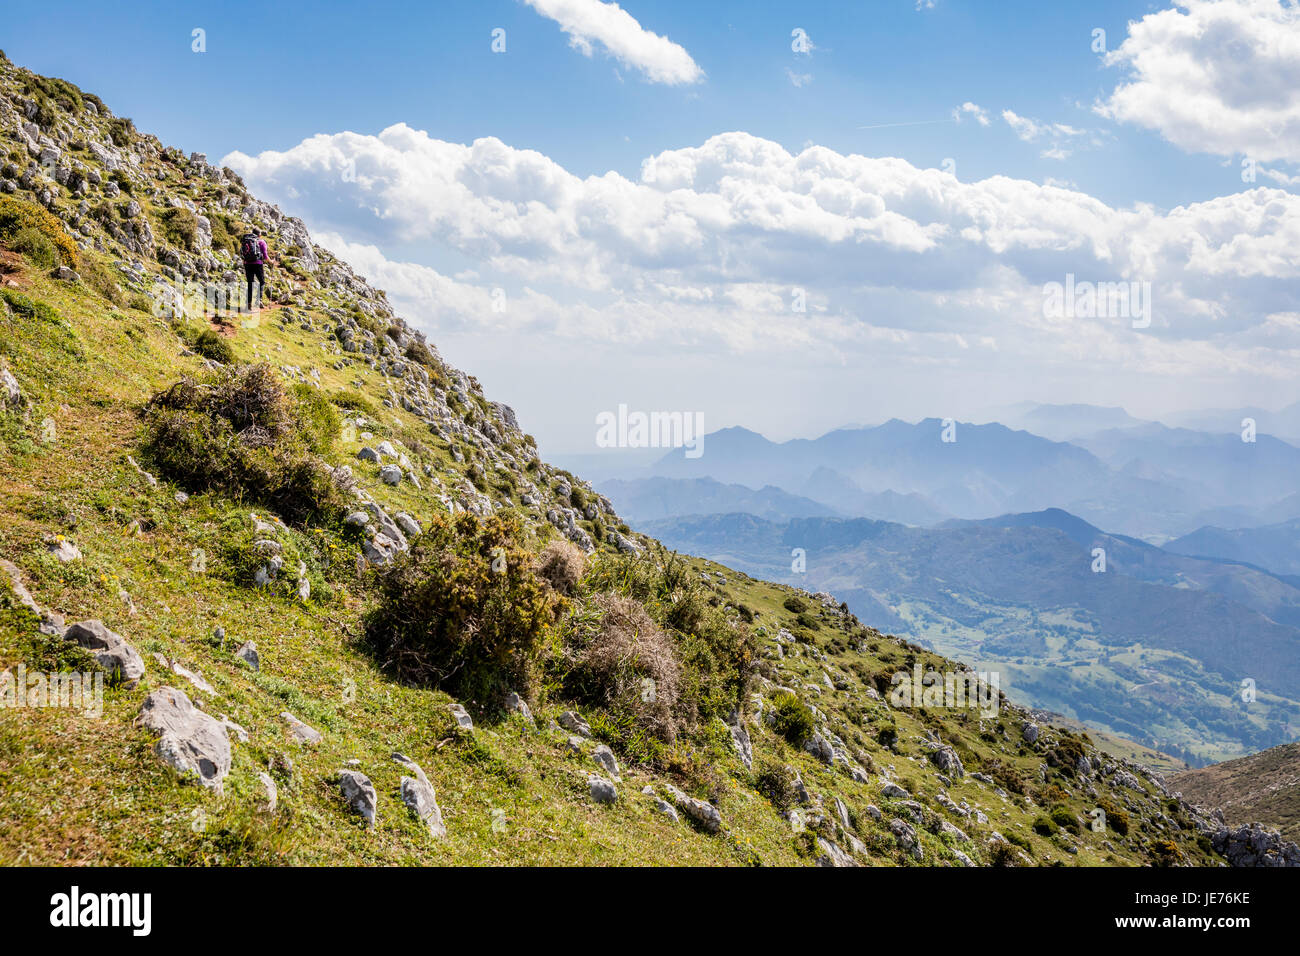 A female walker climbing the steep slope to the rocky summit of Pico Pienzu in the Picos de Europa in northern Spain - Stock Image